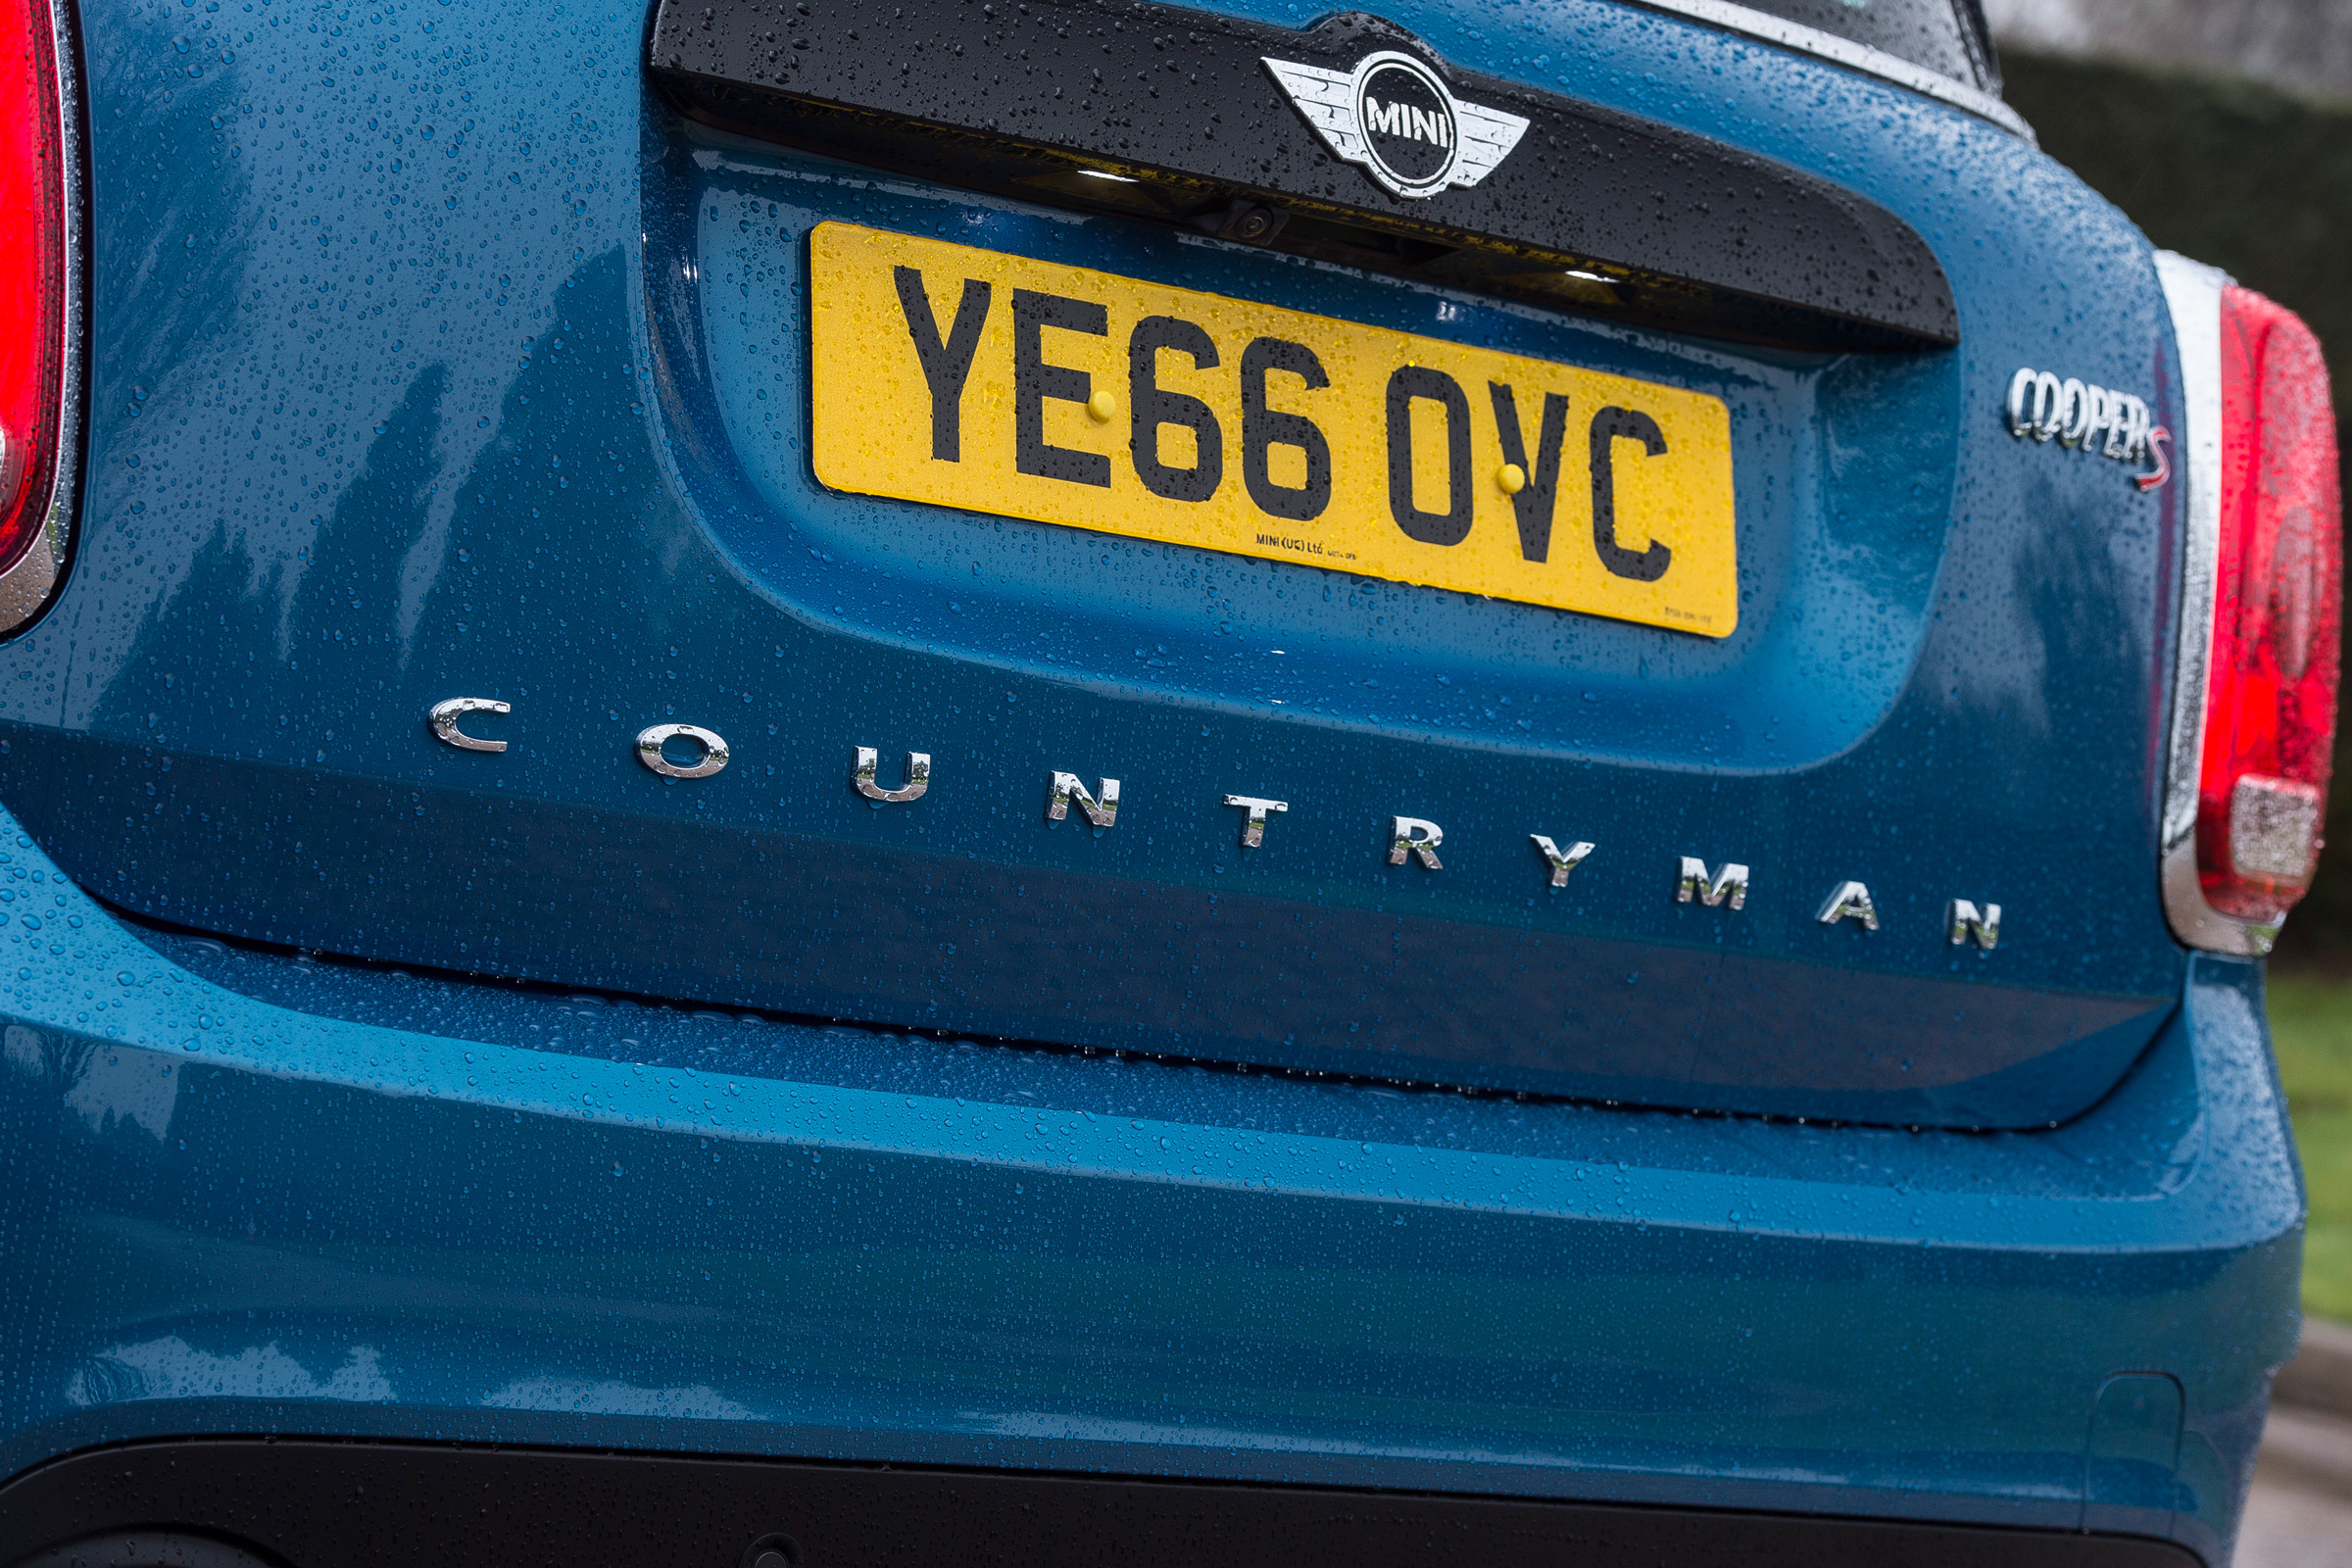 2017 MINI Countryman Exterior View Rear Badge (Photo 51 of 61)